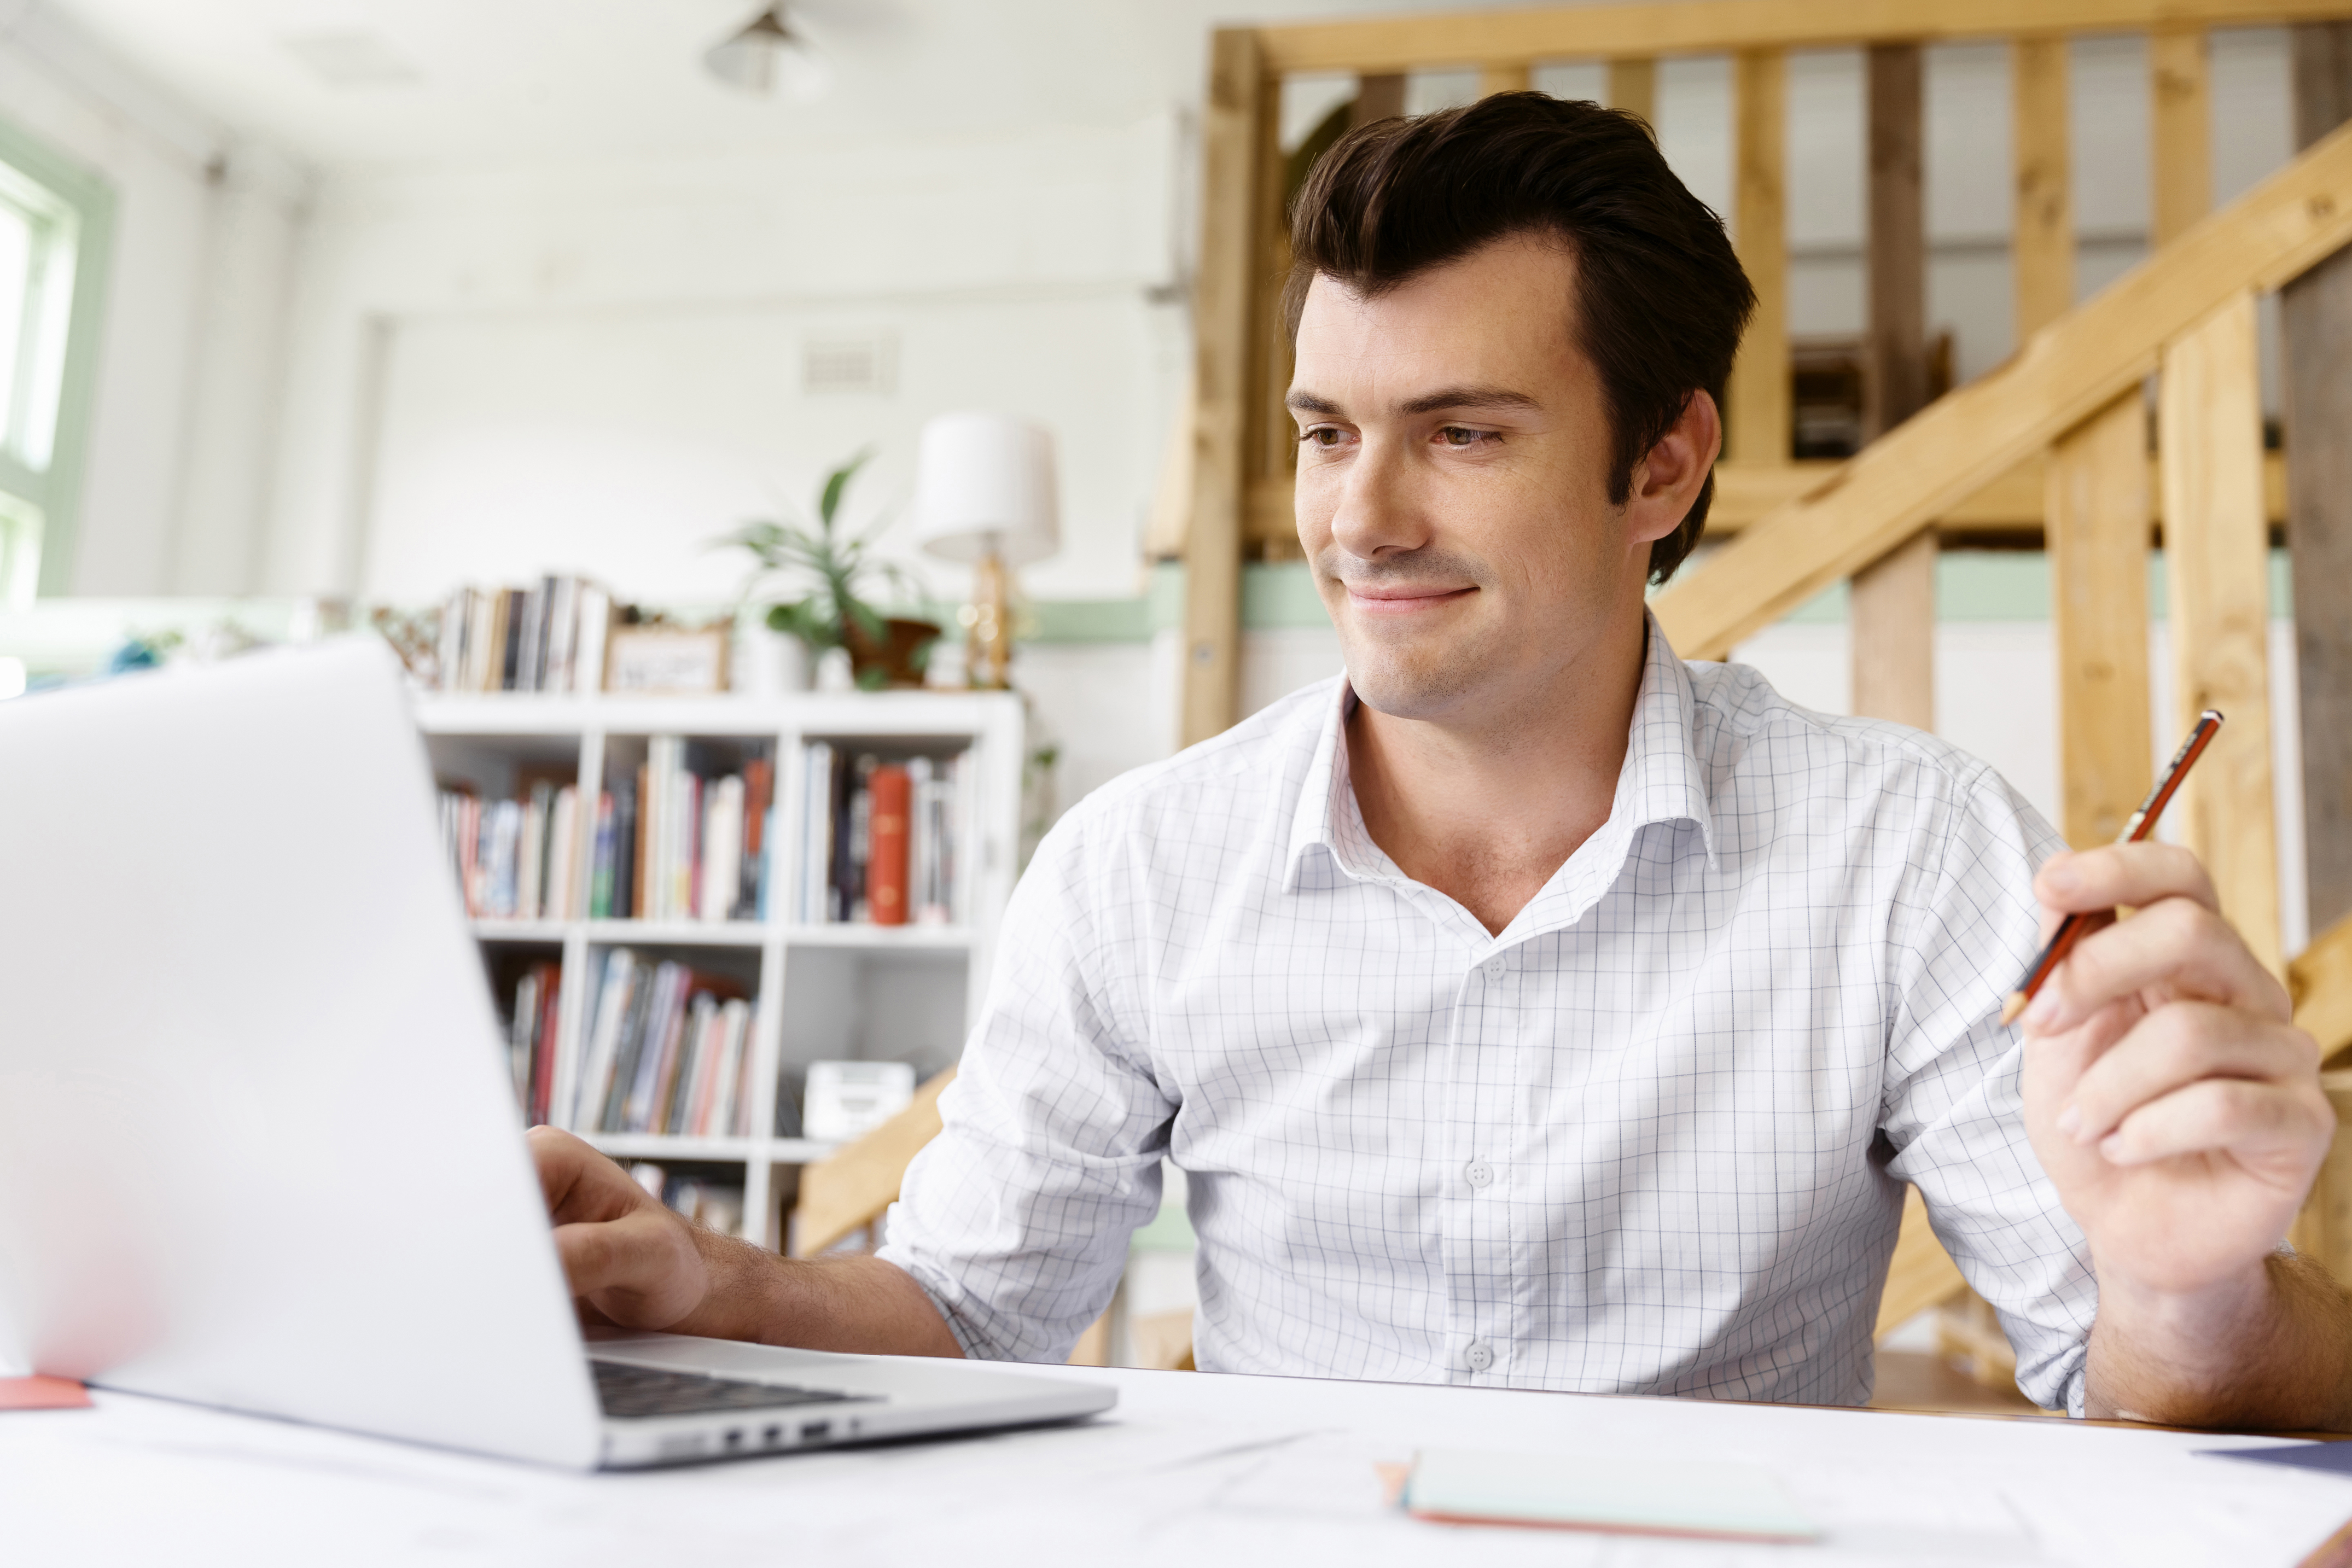 man smiling while working on laptop